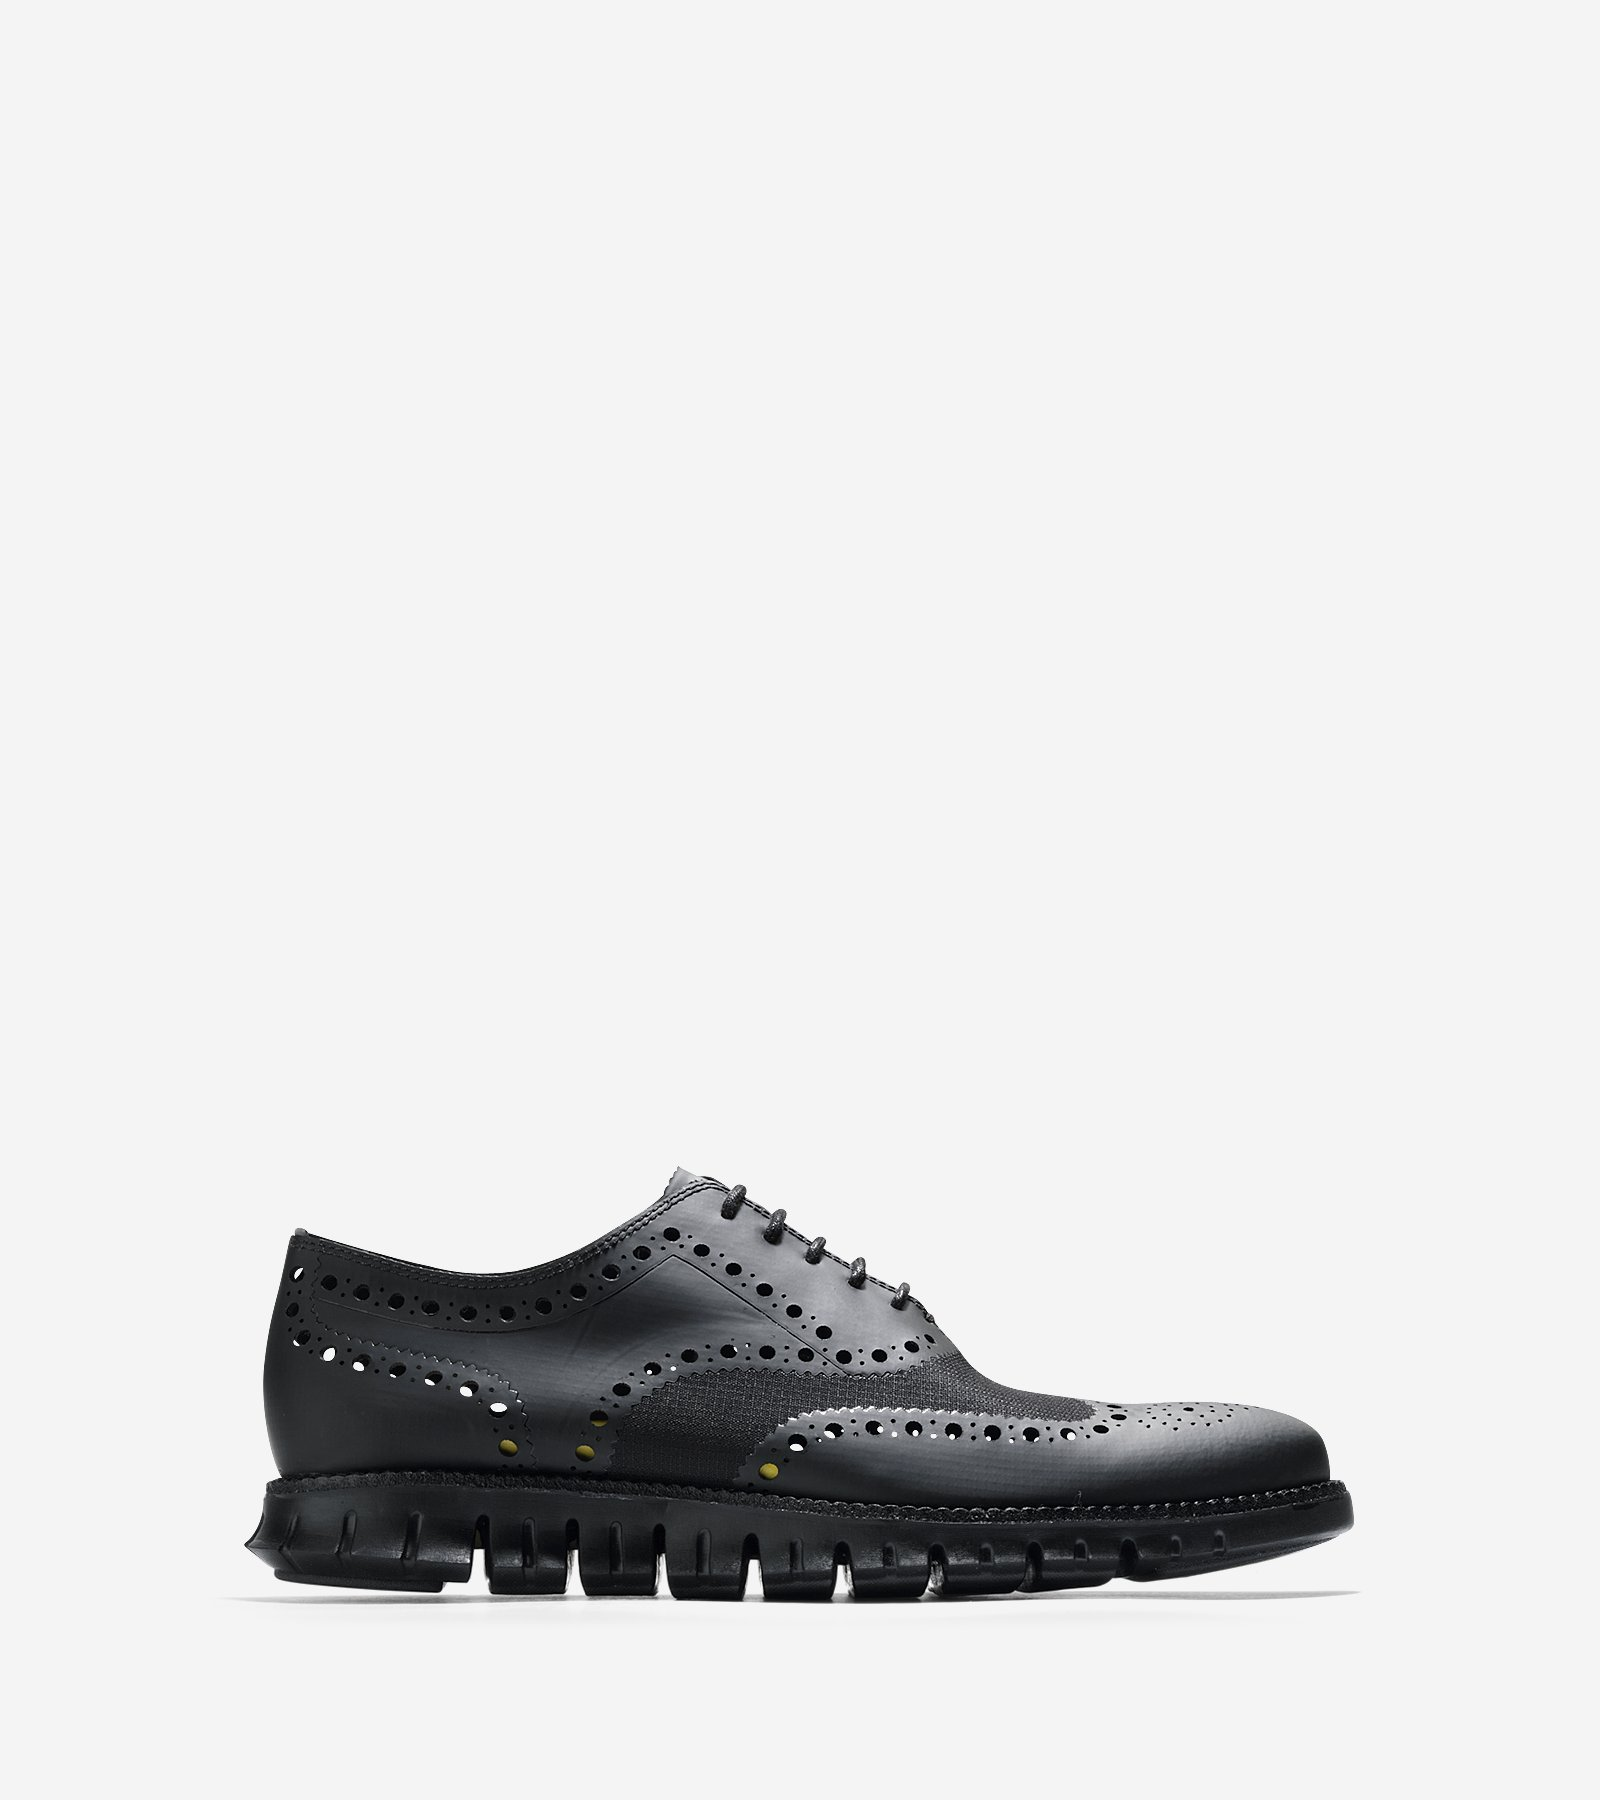 cole haan shoes oxford menus de restaurants francais 708594